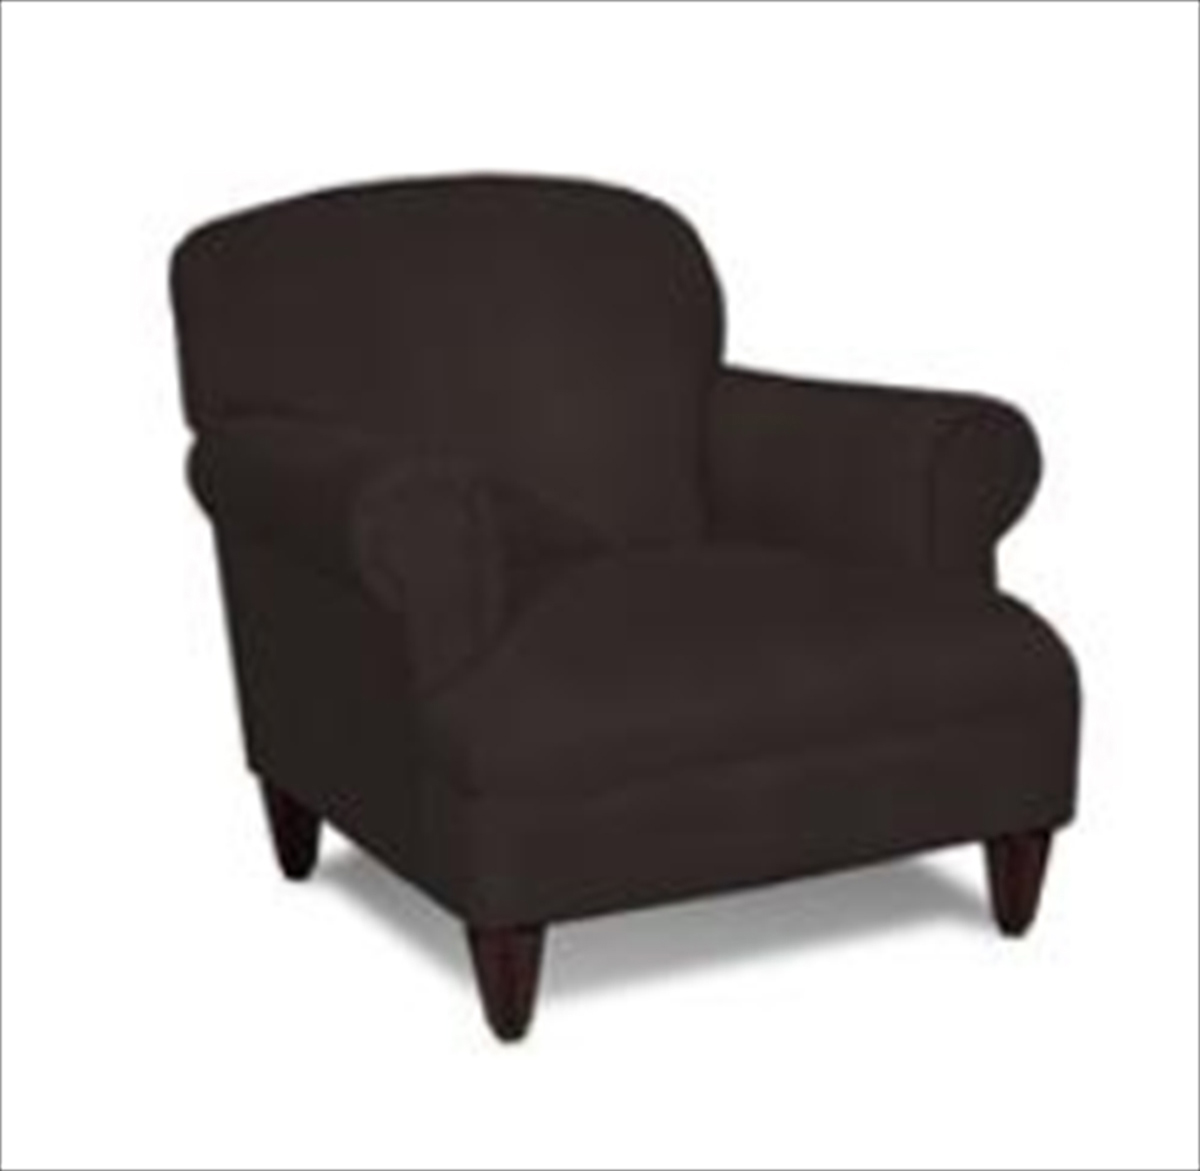 Klaussner Wrigley Chair - Belsire Chocolate